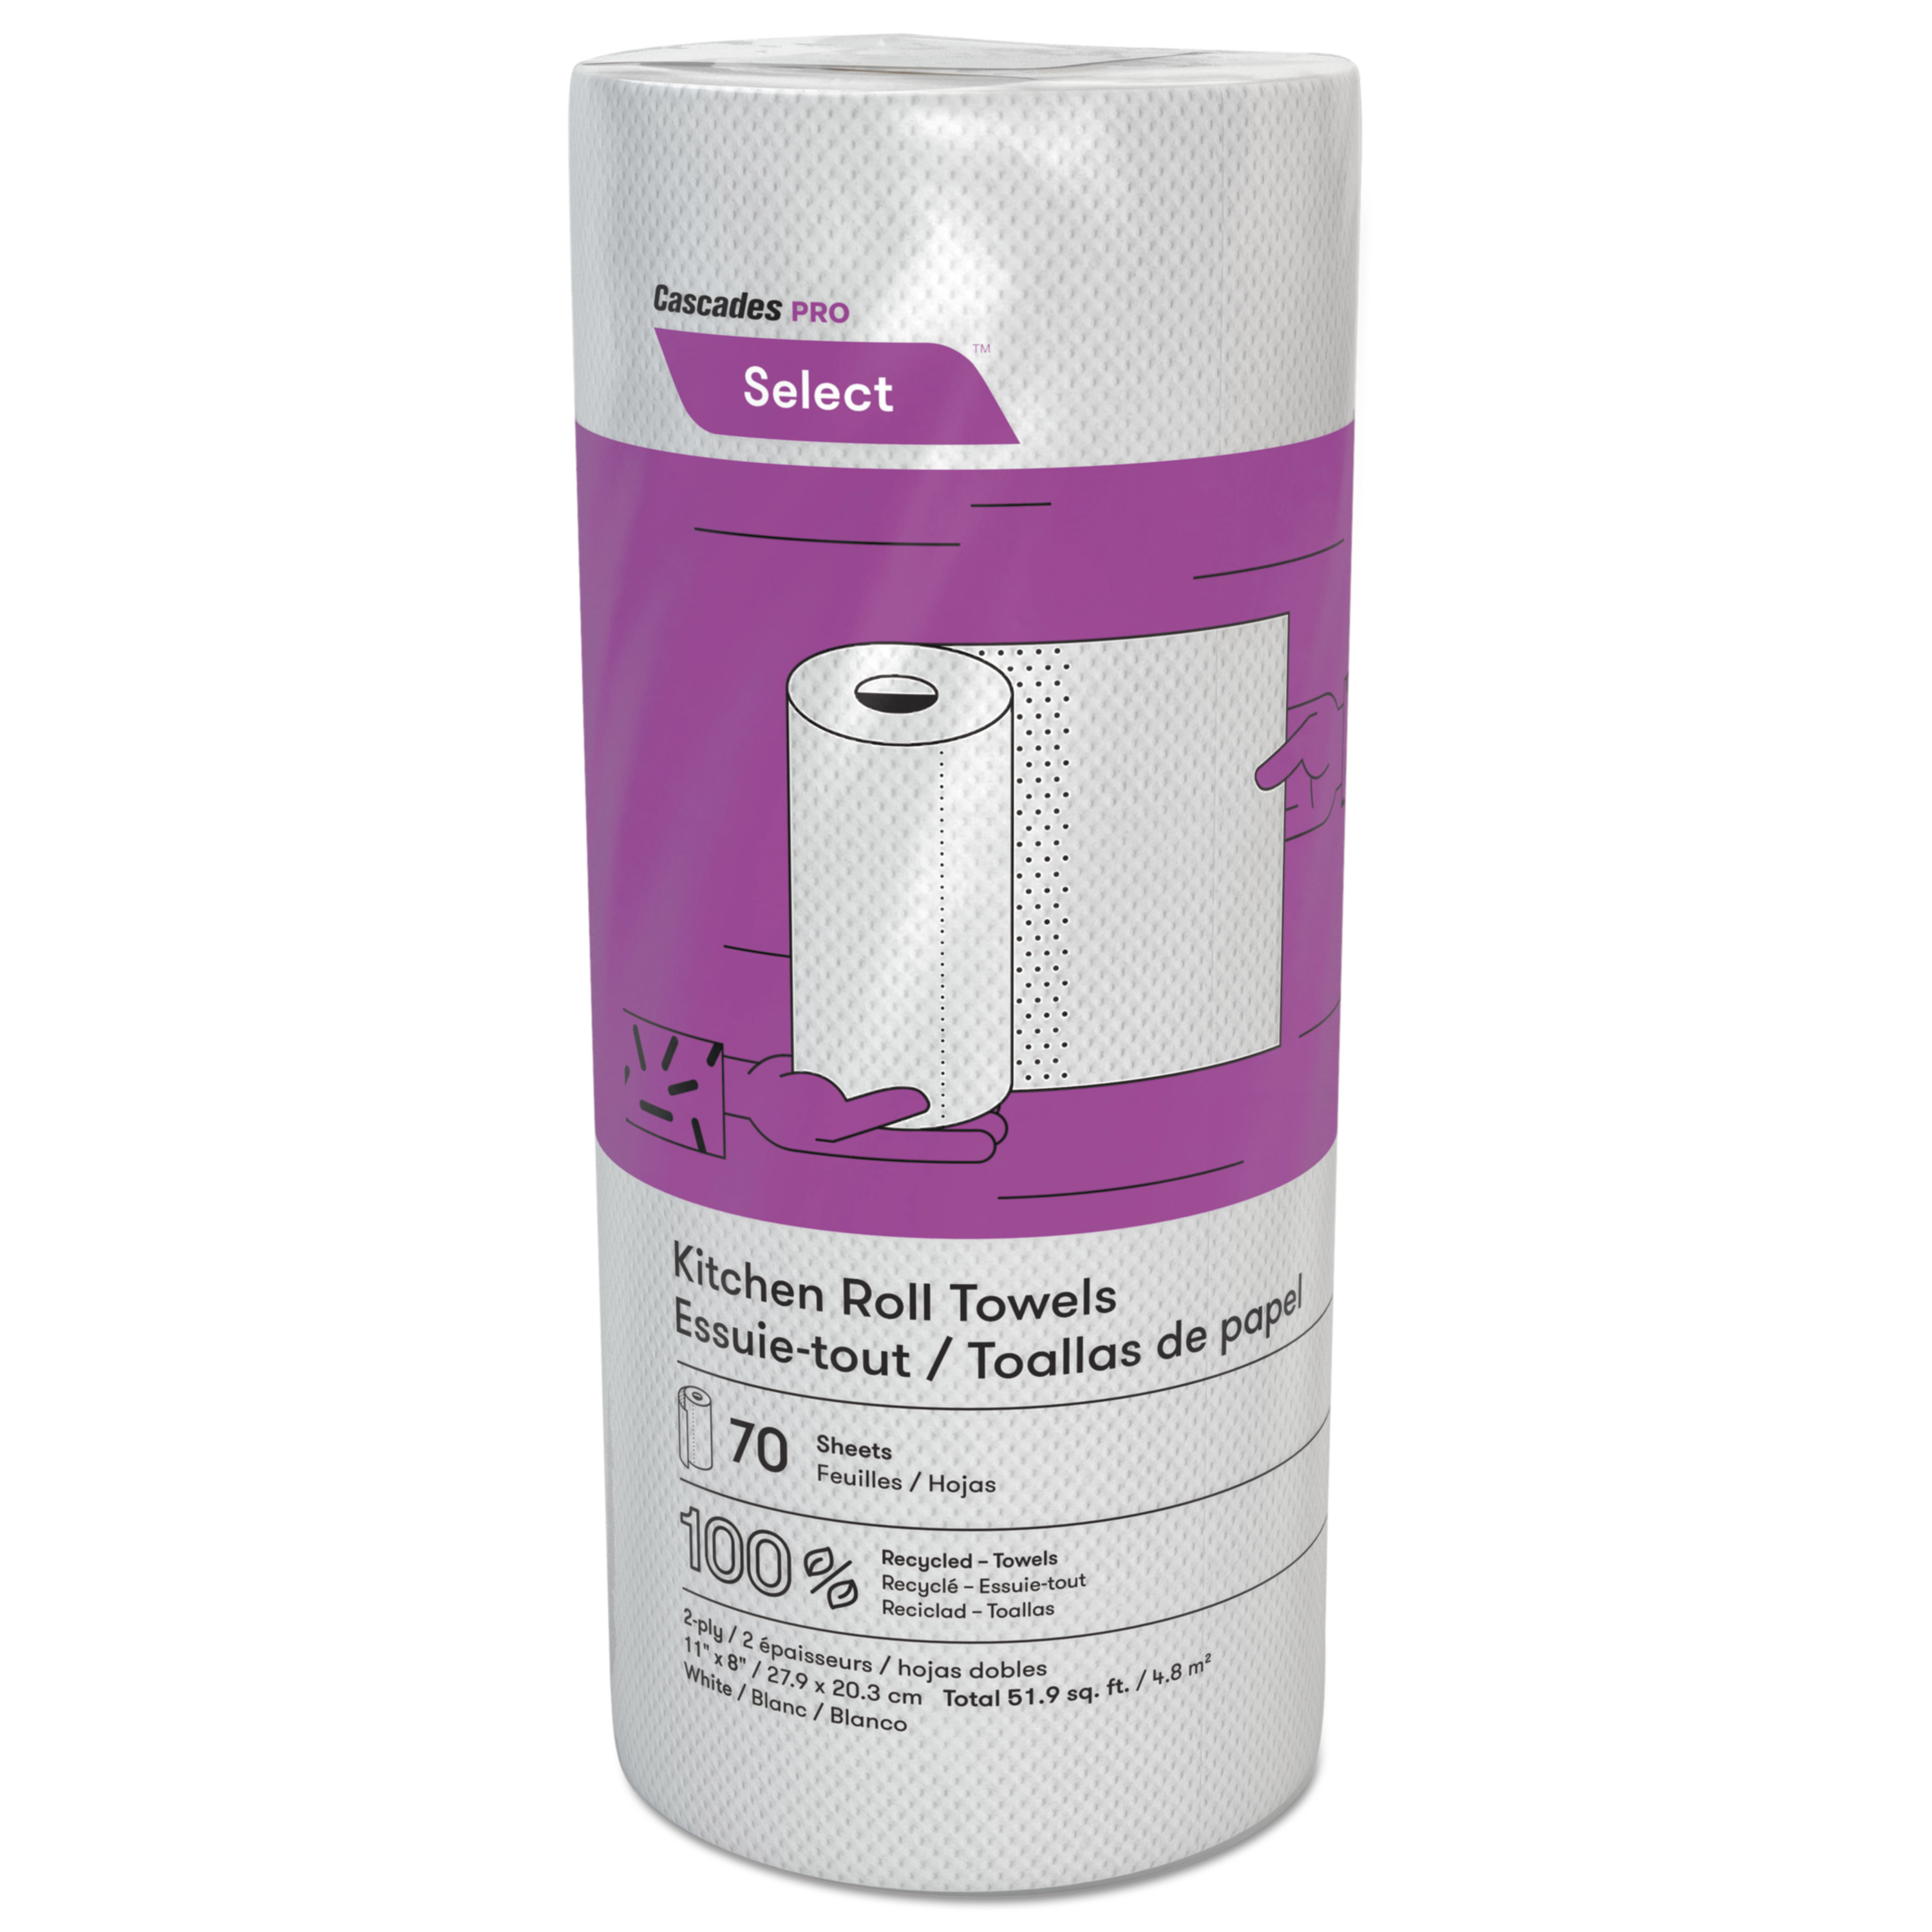 Cascades Decor Perforated Roll Towels, 2-Ply, 8 x 11, White, 70/Roll, 30 Rolls/Carton